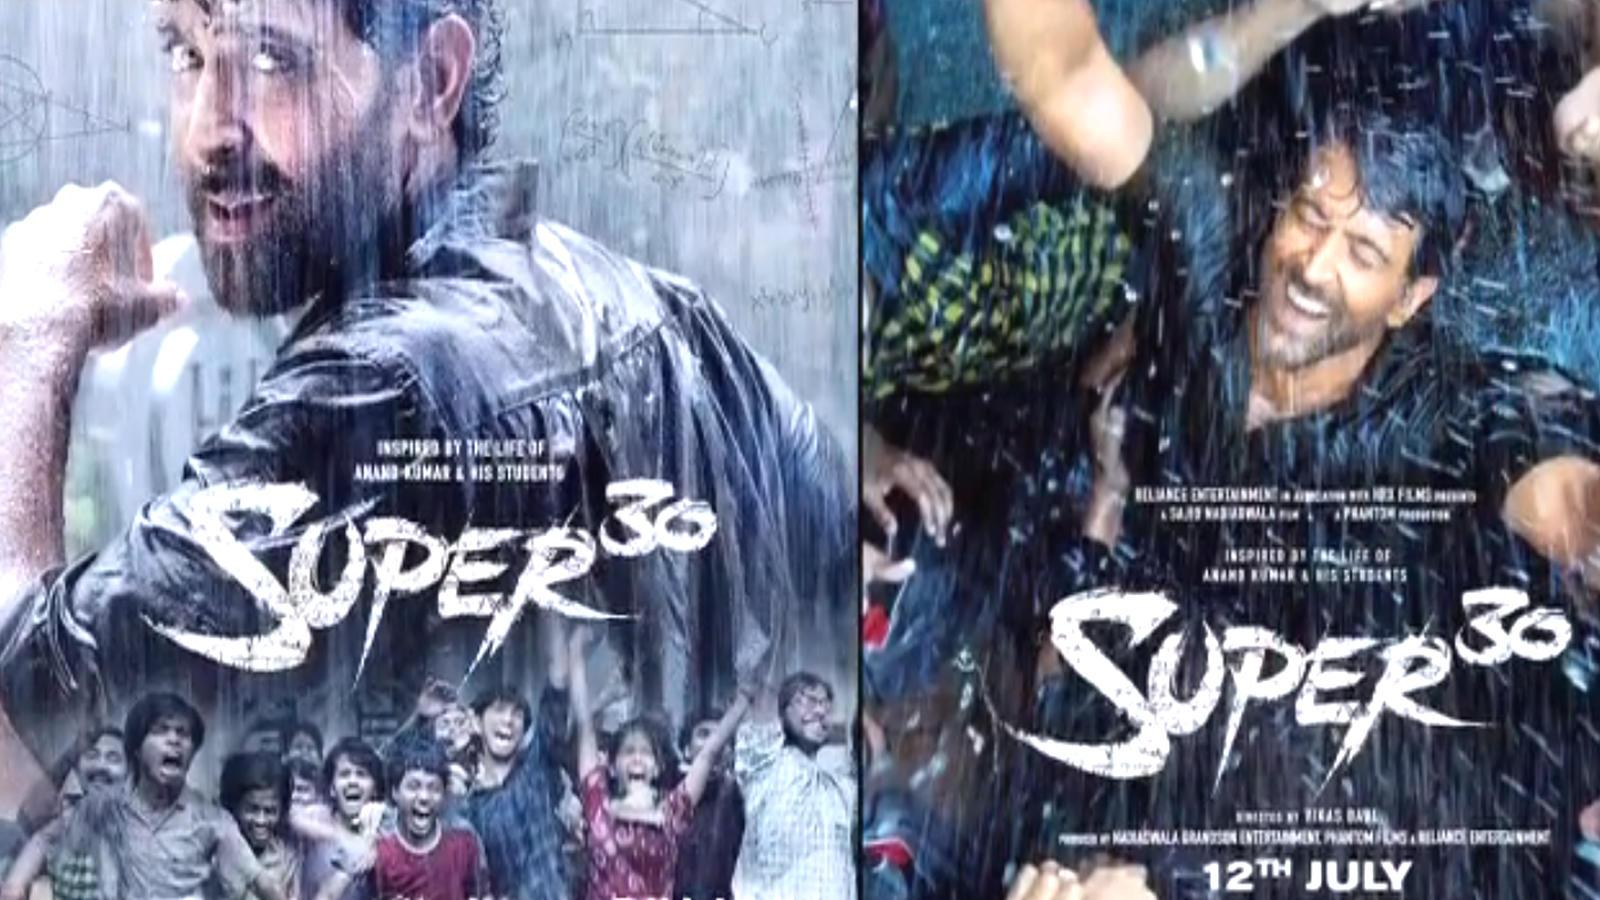 Super 30 Movie Wallpapers Wallpaper Cave